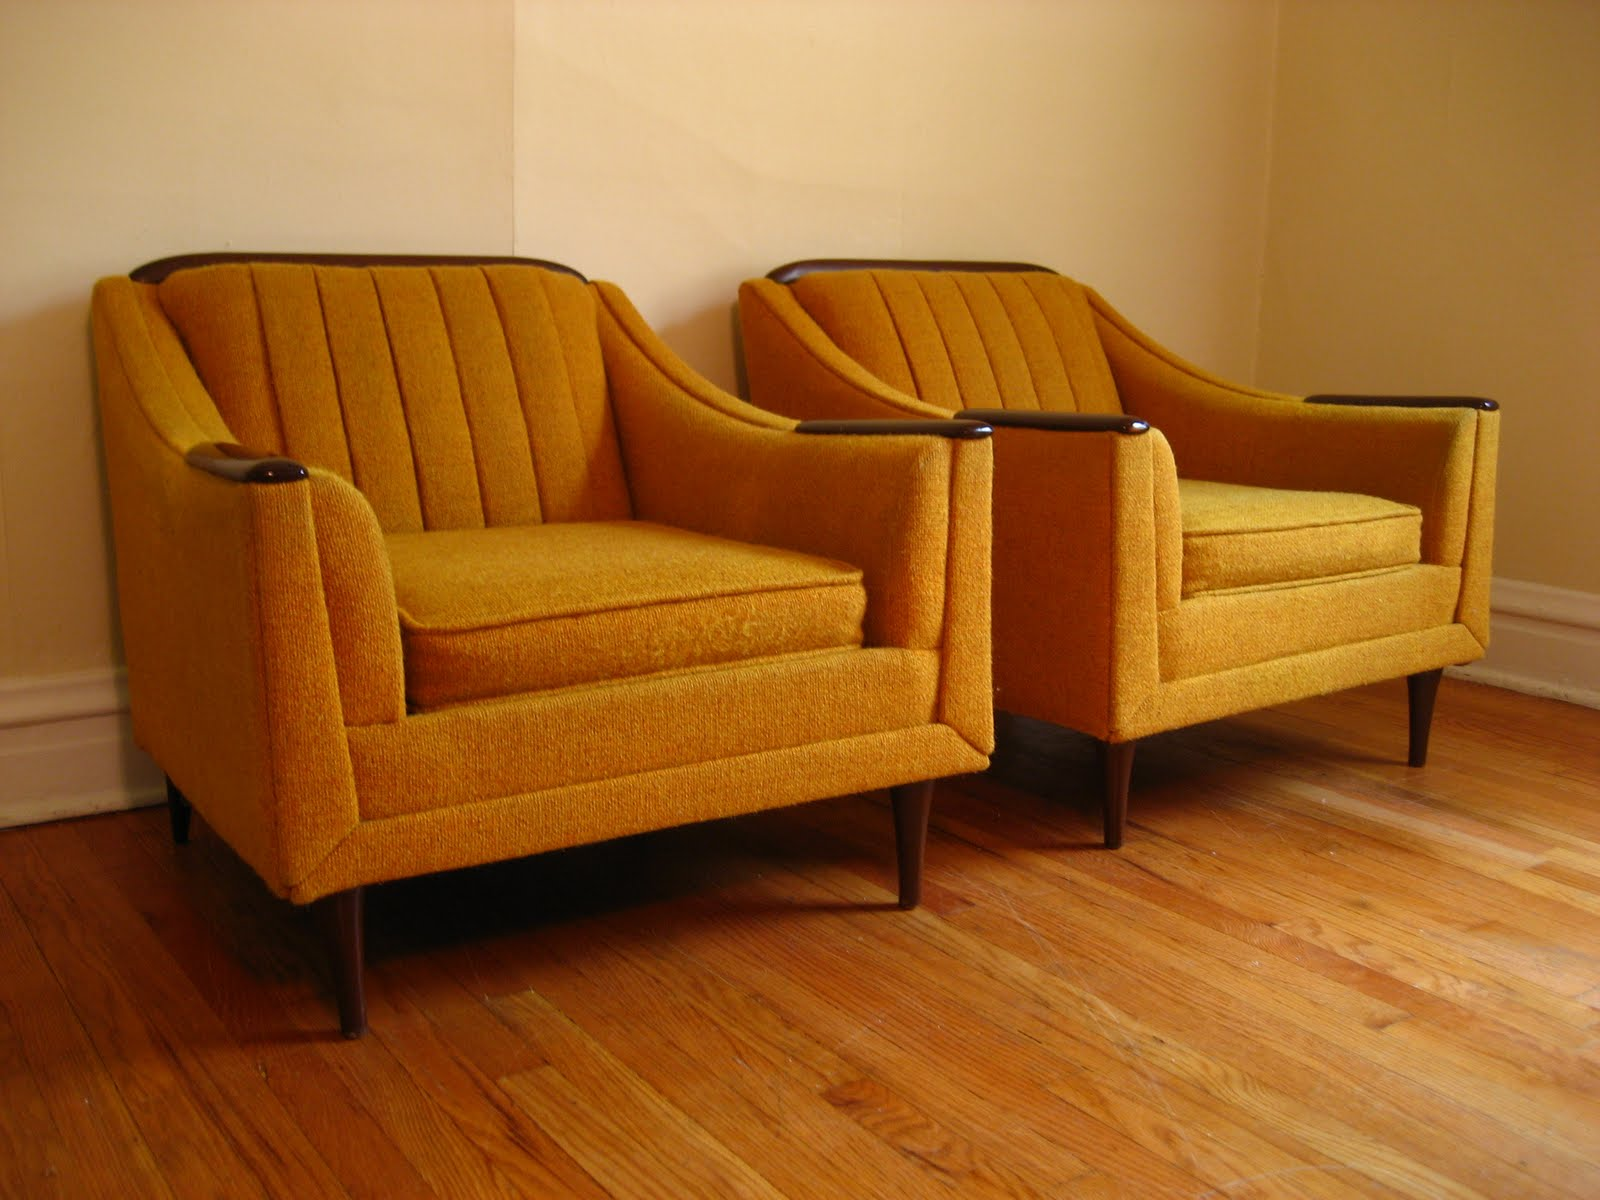 flatout design mid century modern lounge chairs. Black Bedroom Furniture Sets. Home Design Ideas